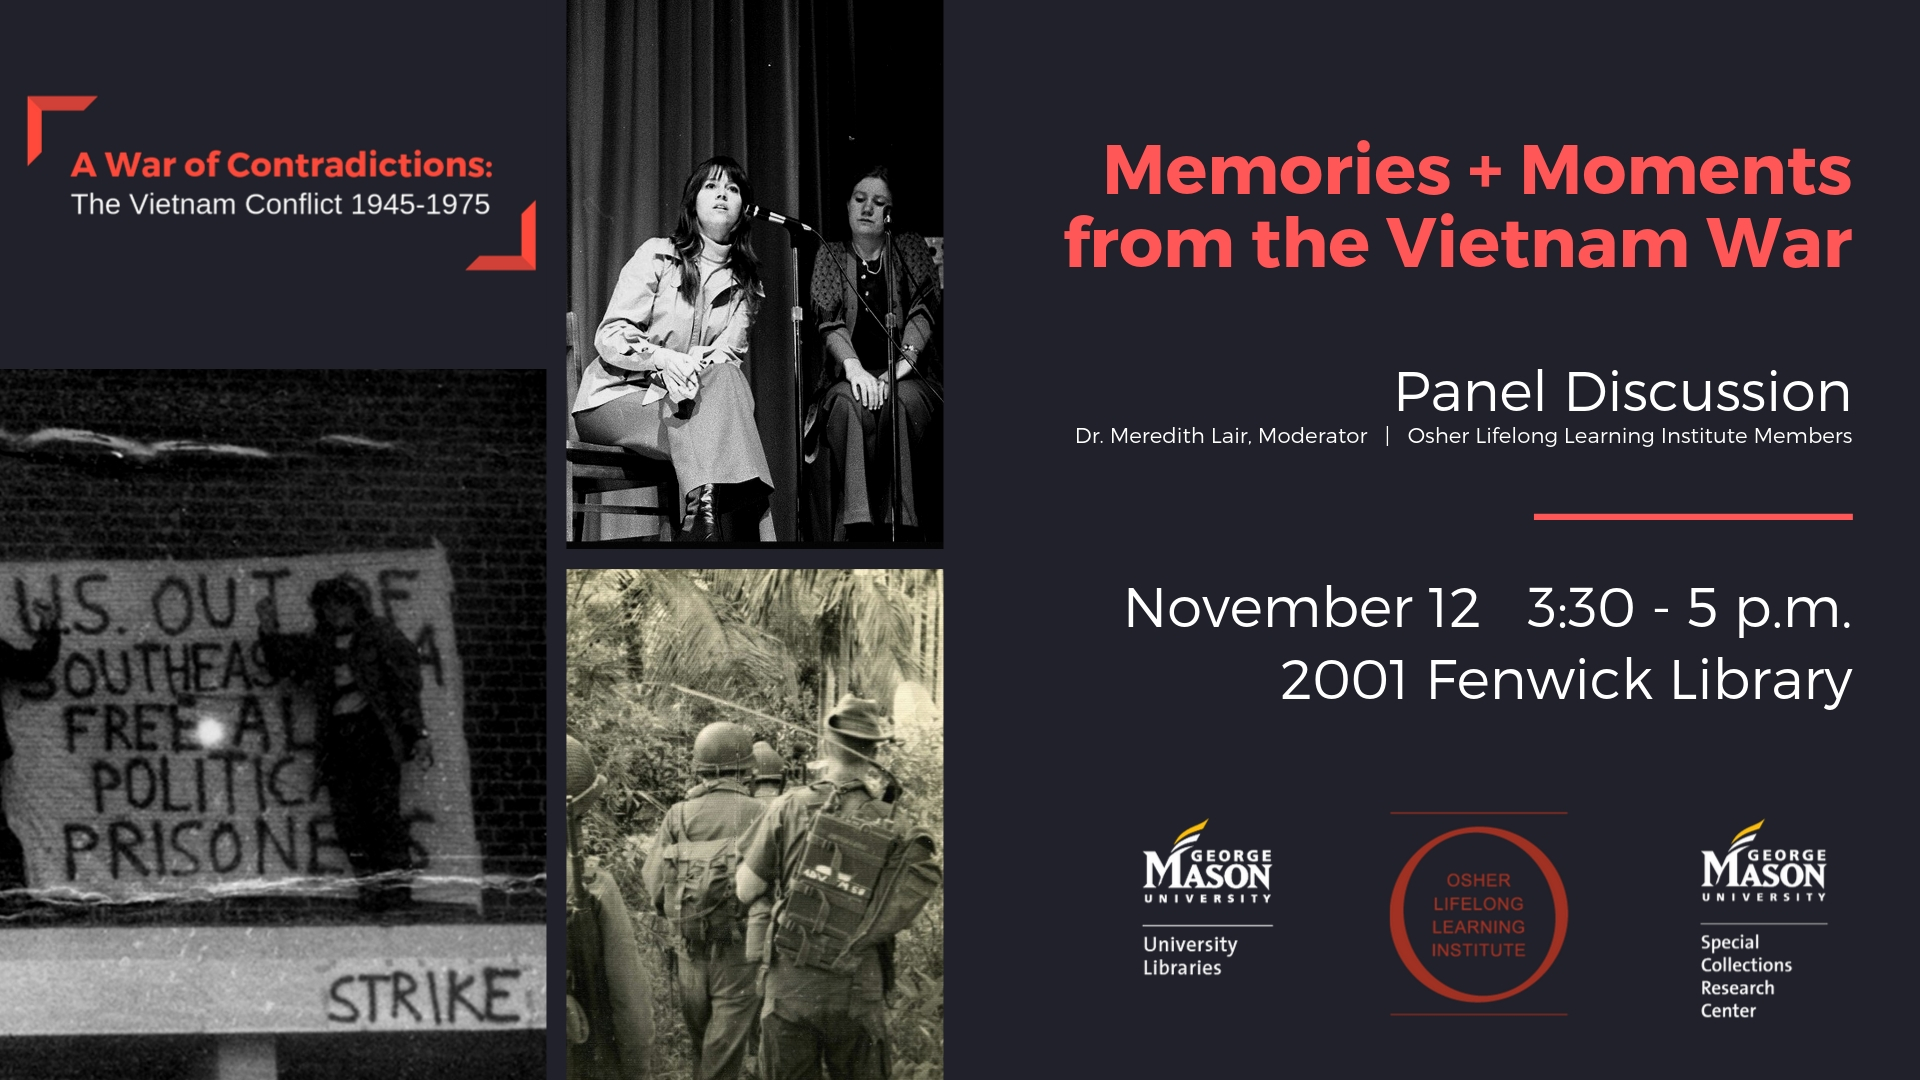 Memories and Moments from the Vietnam War